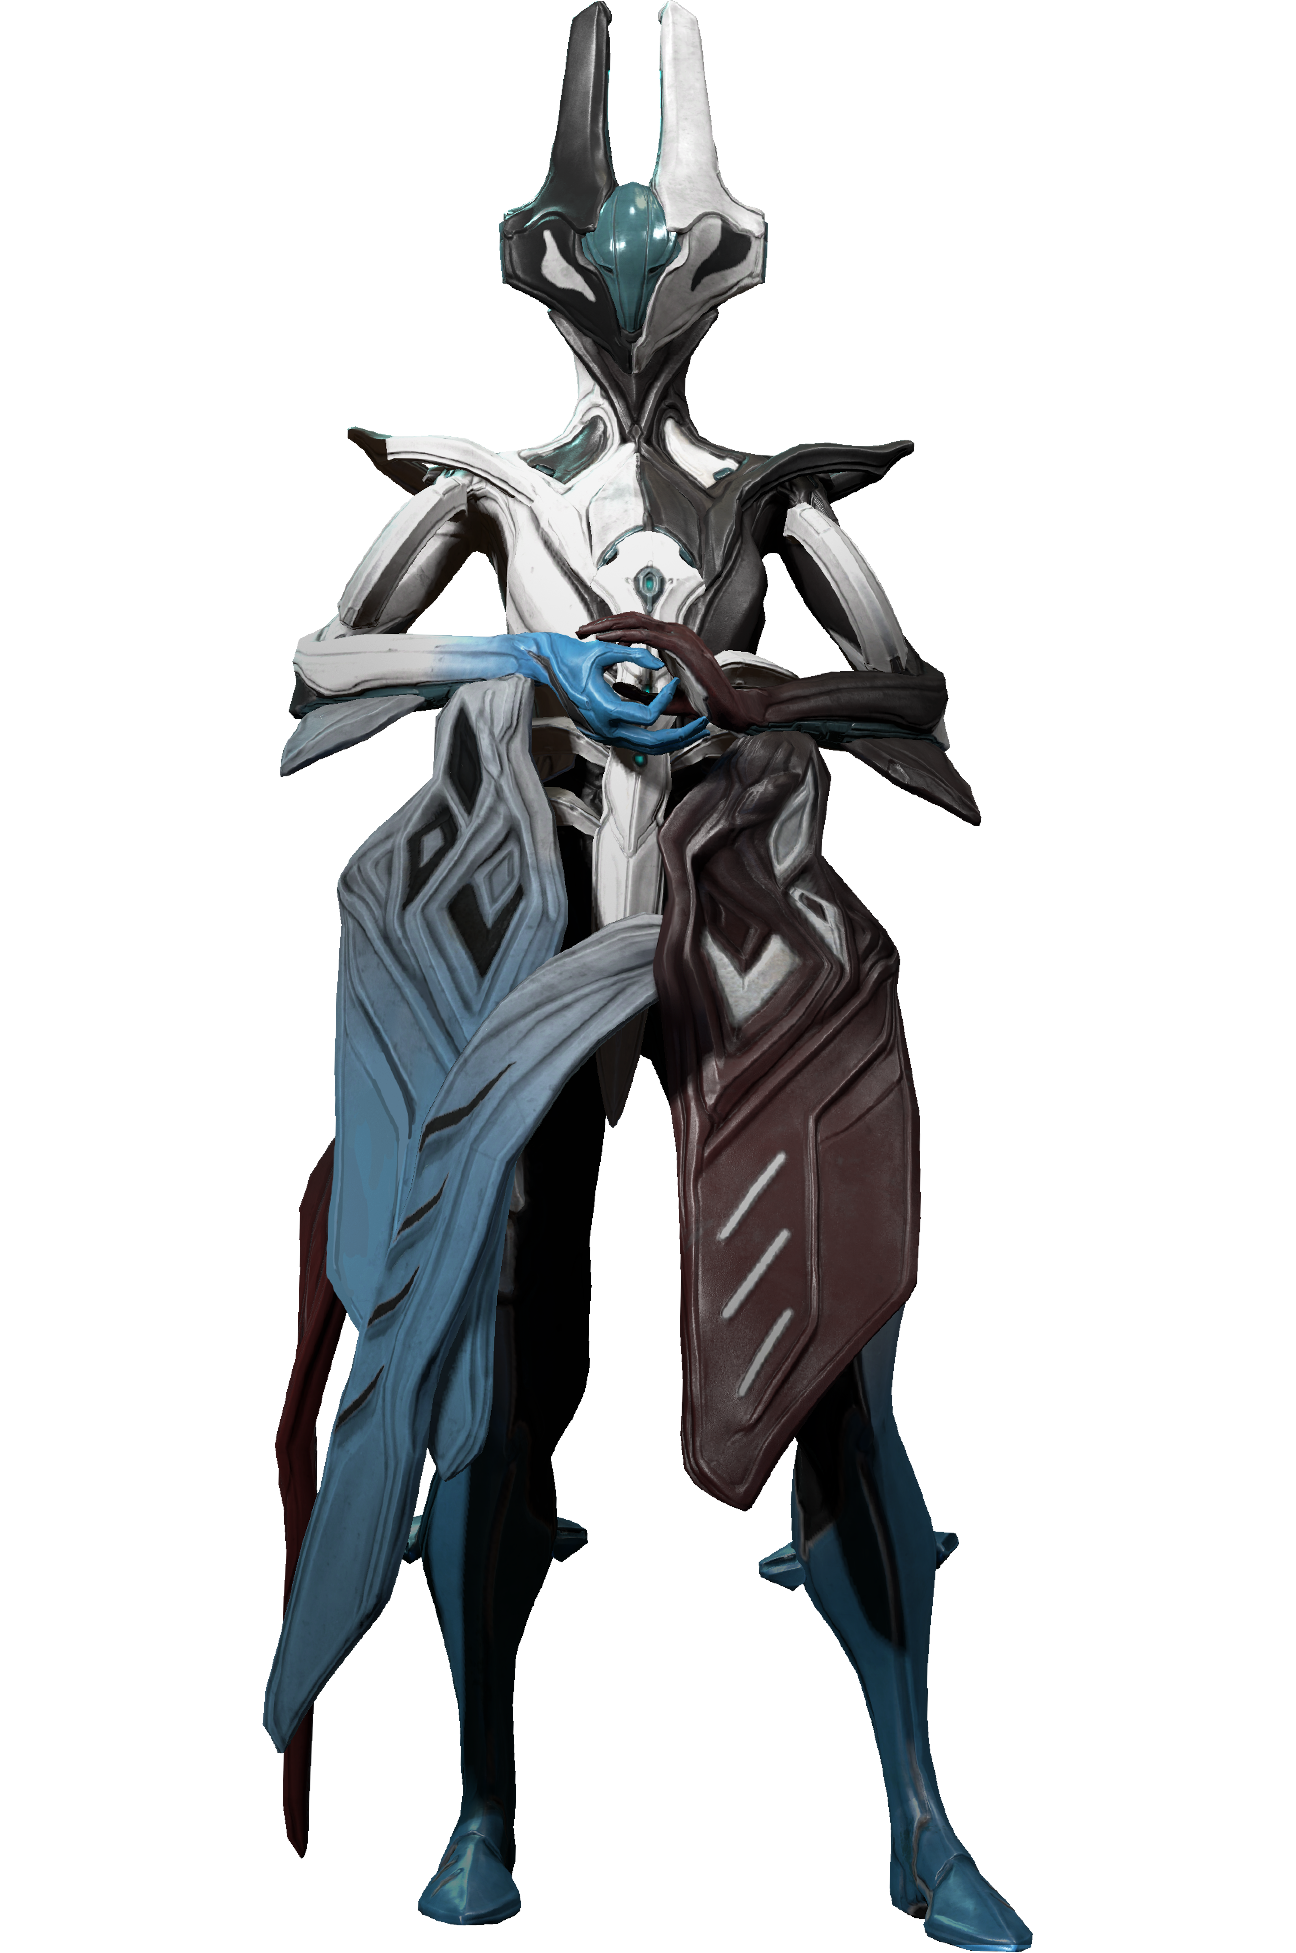 equinox is the living embodiment of warframe duality both day and